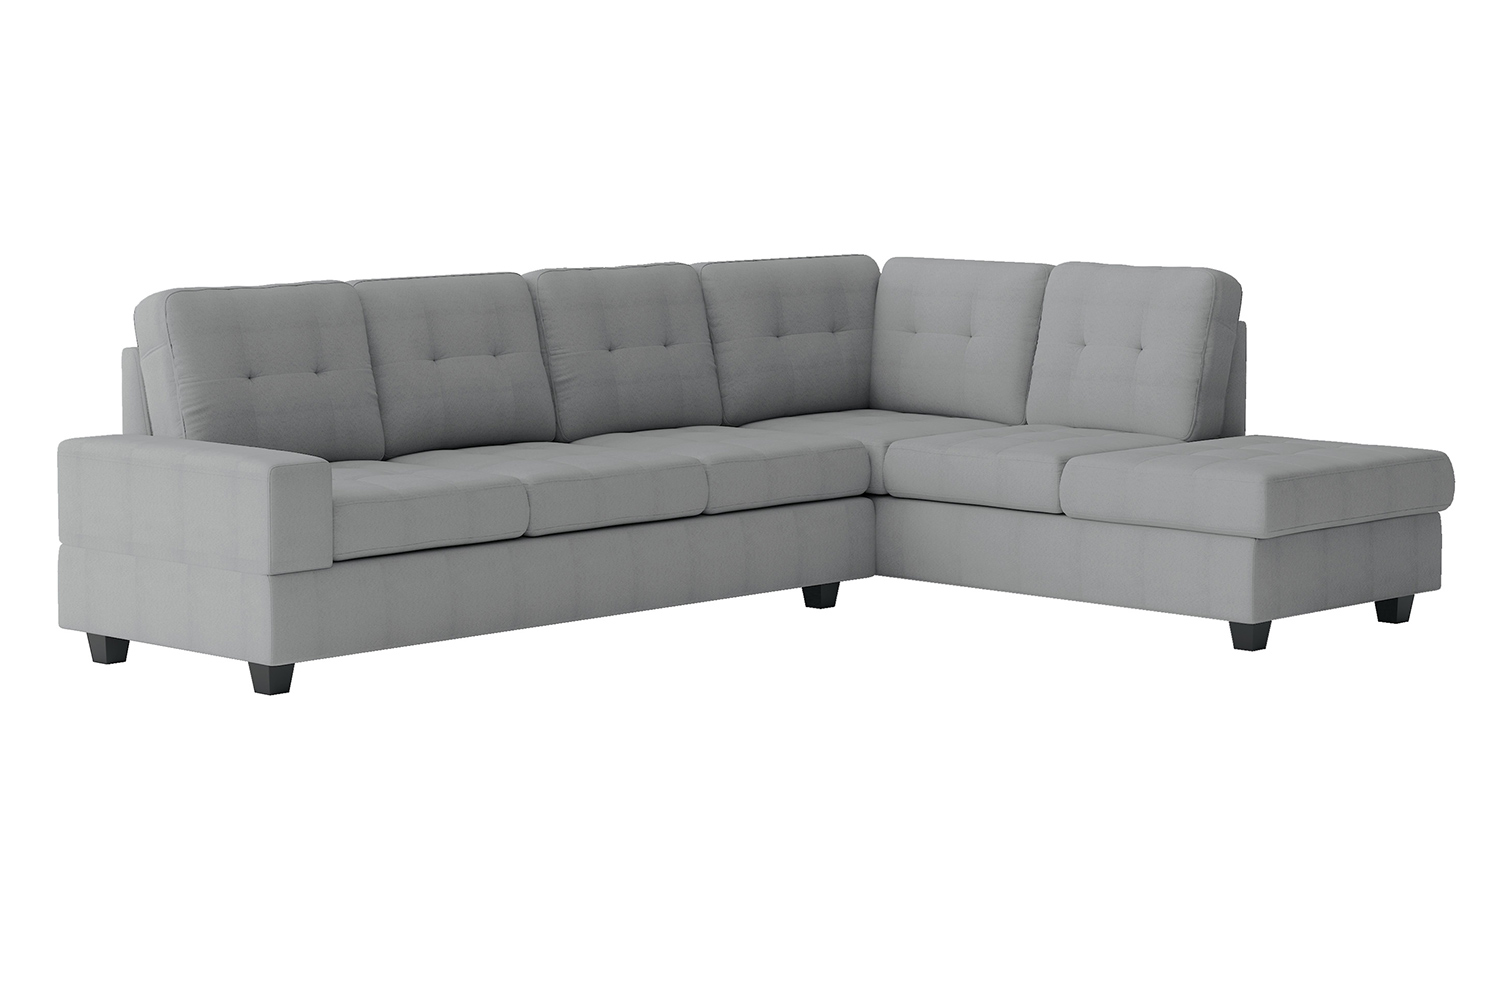 Homelegance Maston Sectional Sofa Set - Light gray